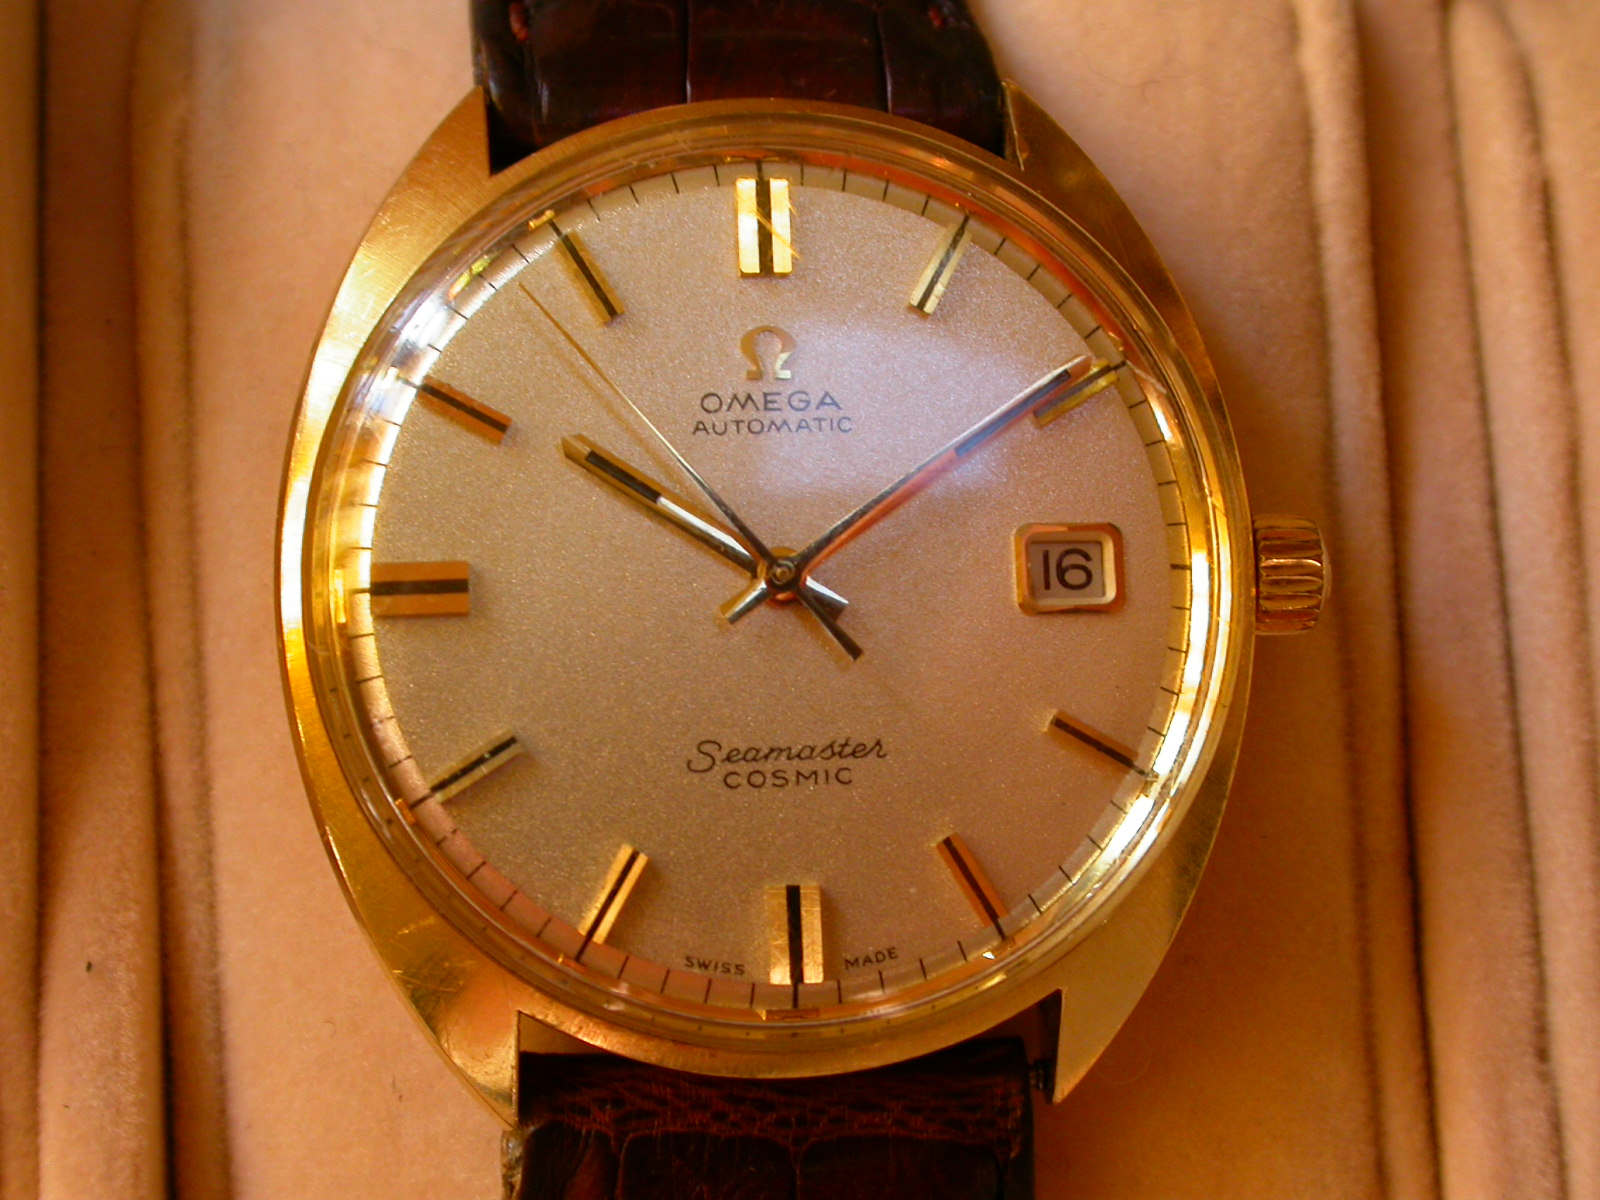 Omega Montre Ancienne